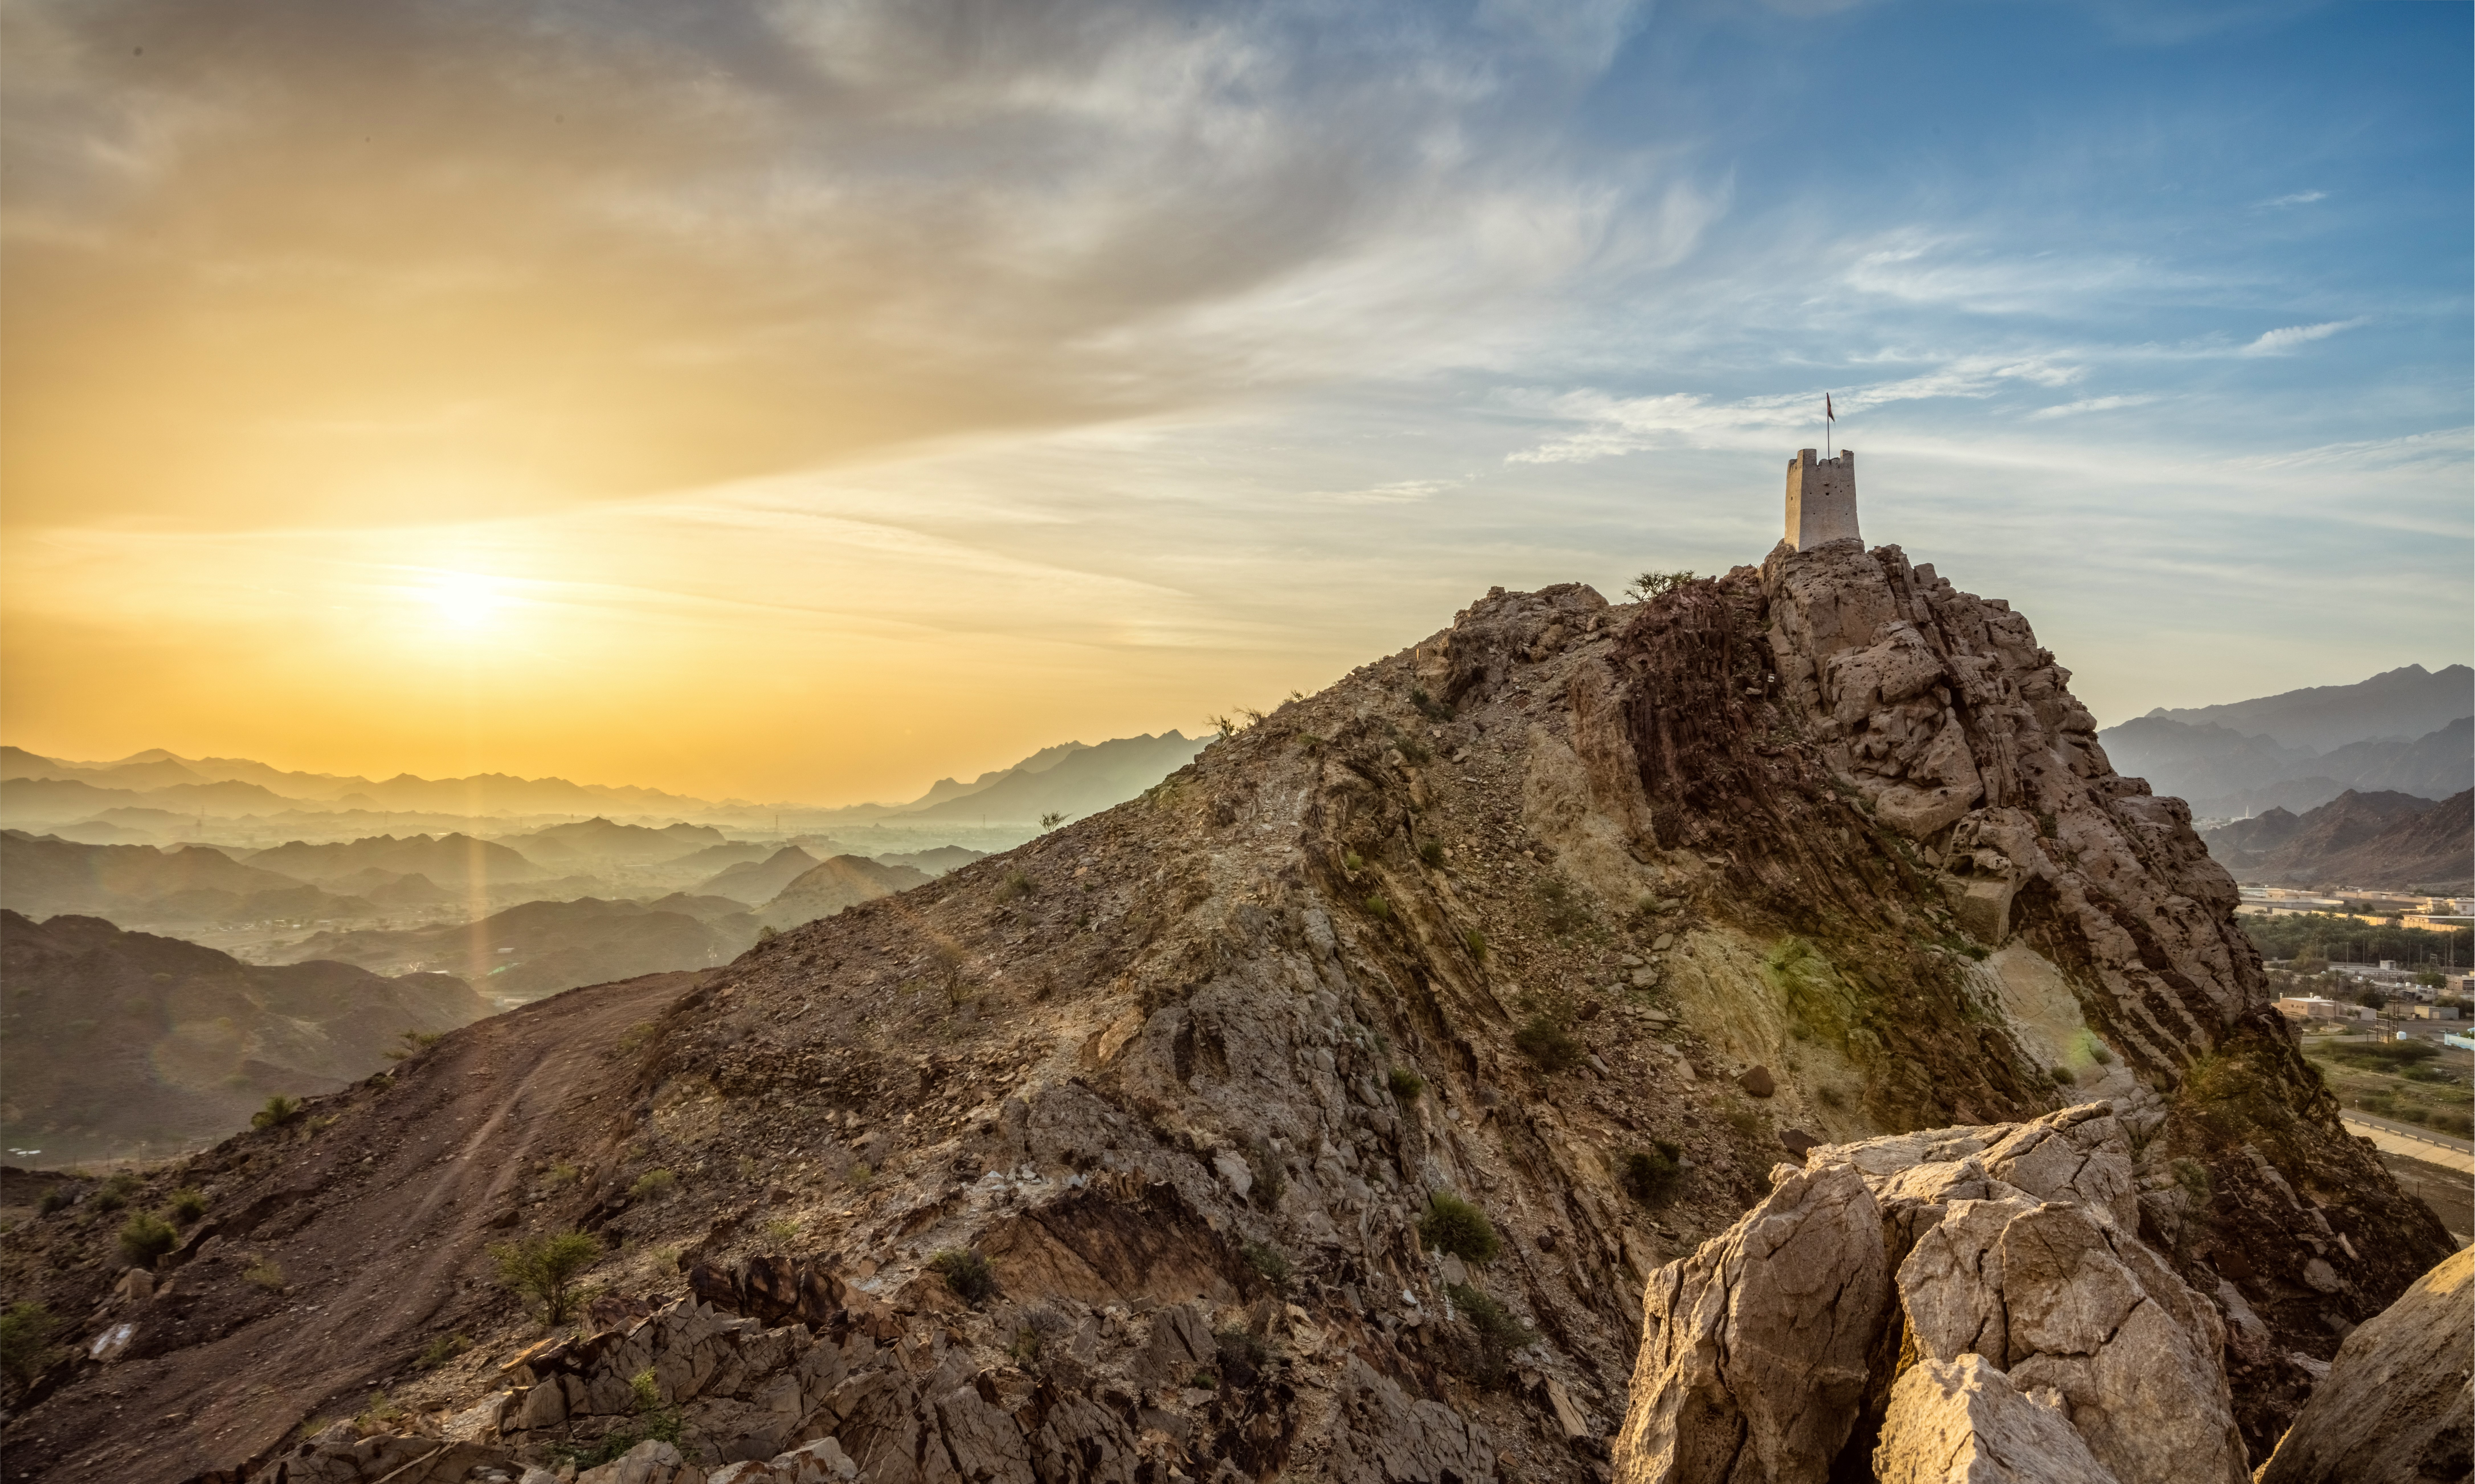 Discover Middle East Secrets of Ajman at Masfout Fort